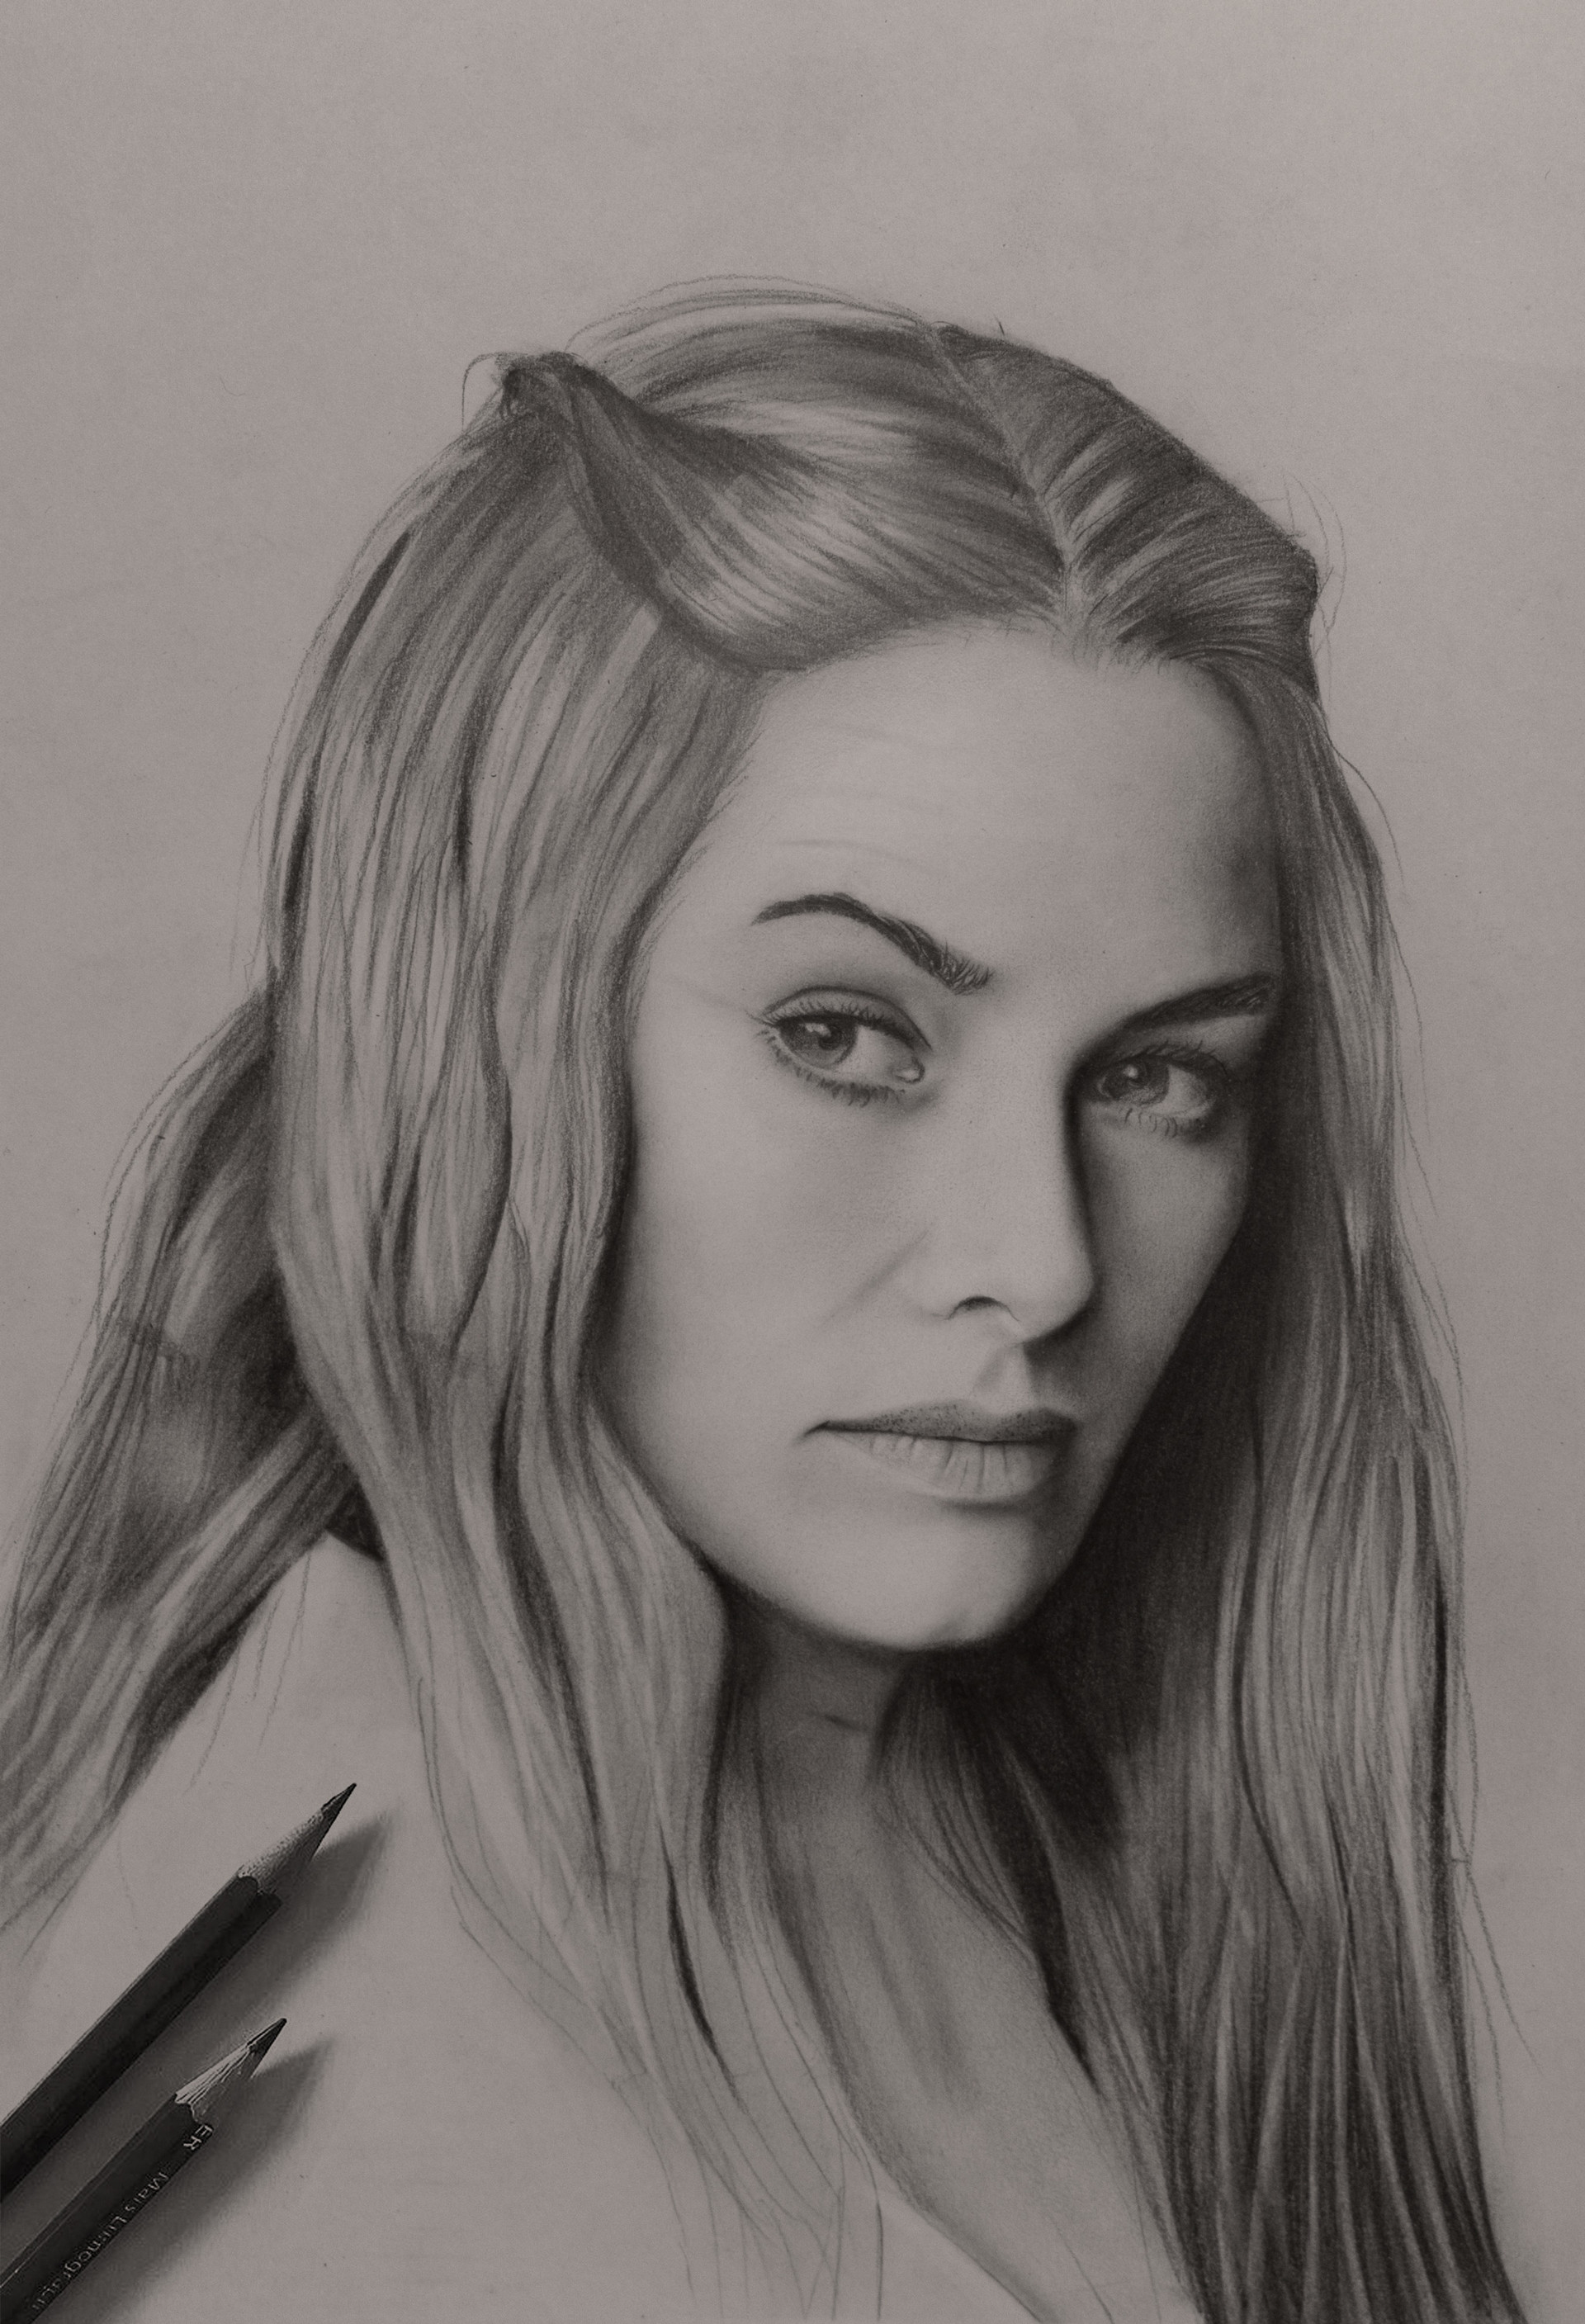 Cersei lannister pencil sketch